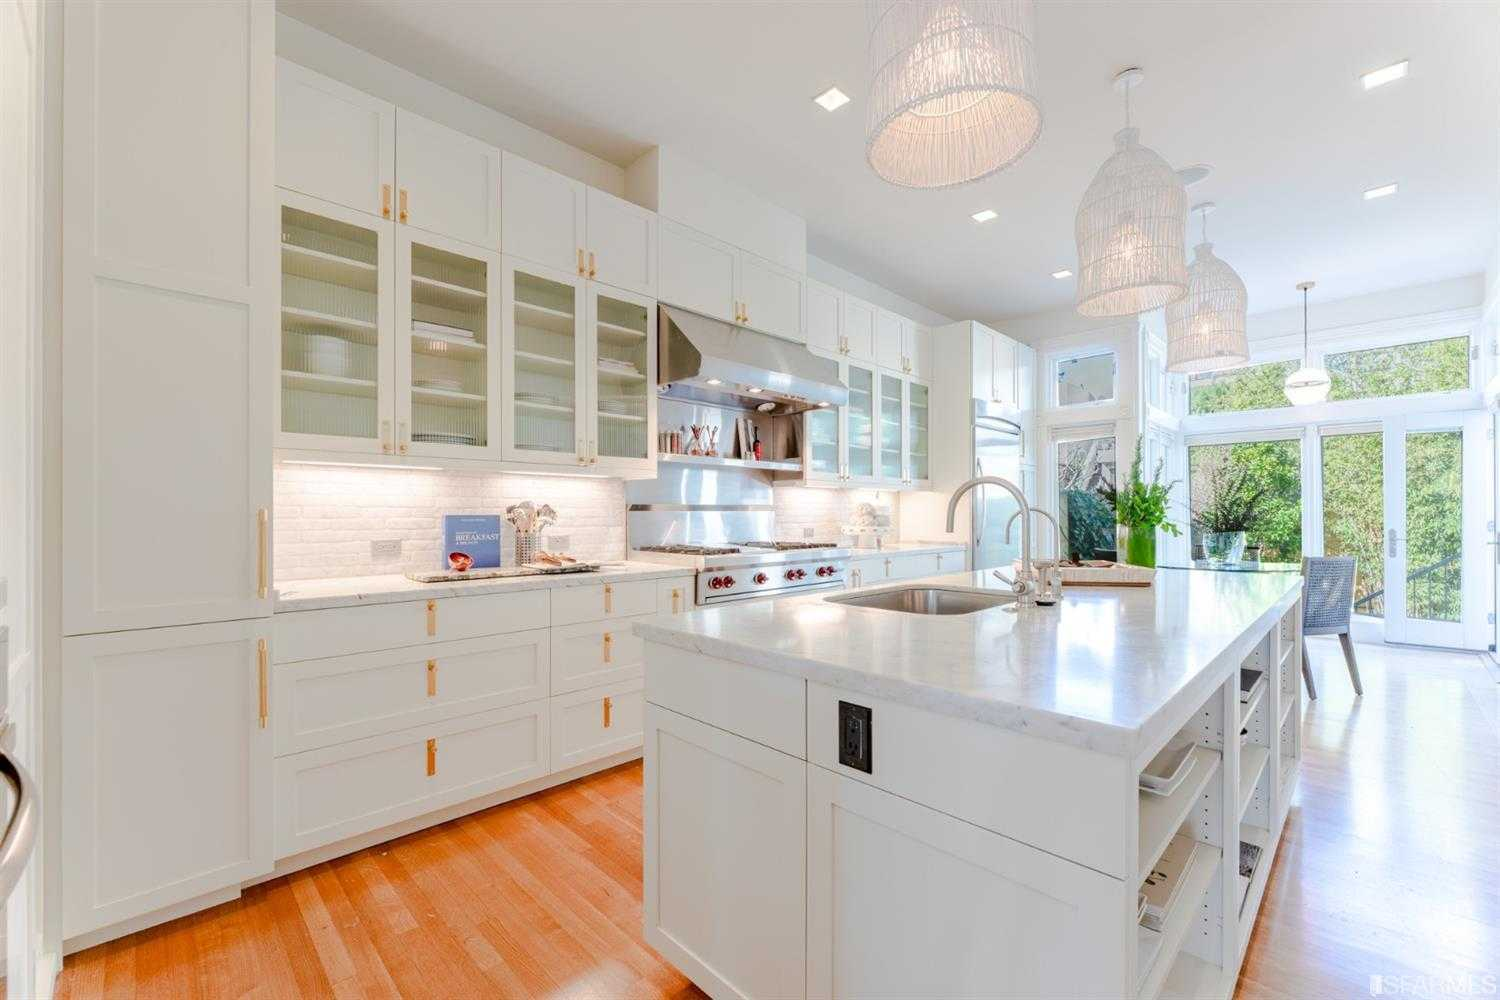 $3,495,000 - 4Br/3Ba -  for Sale in San Francisco